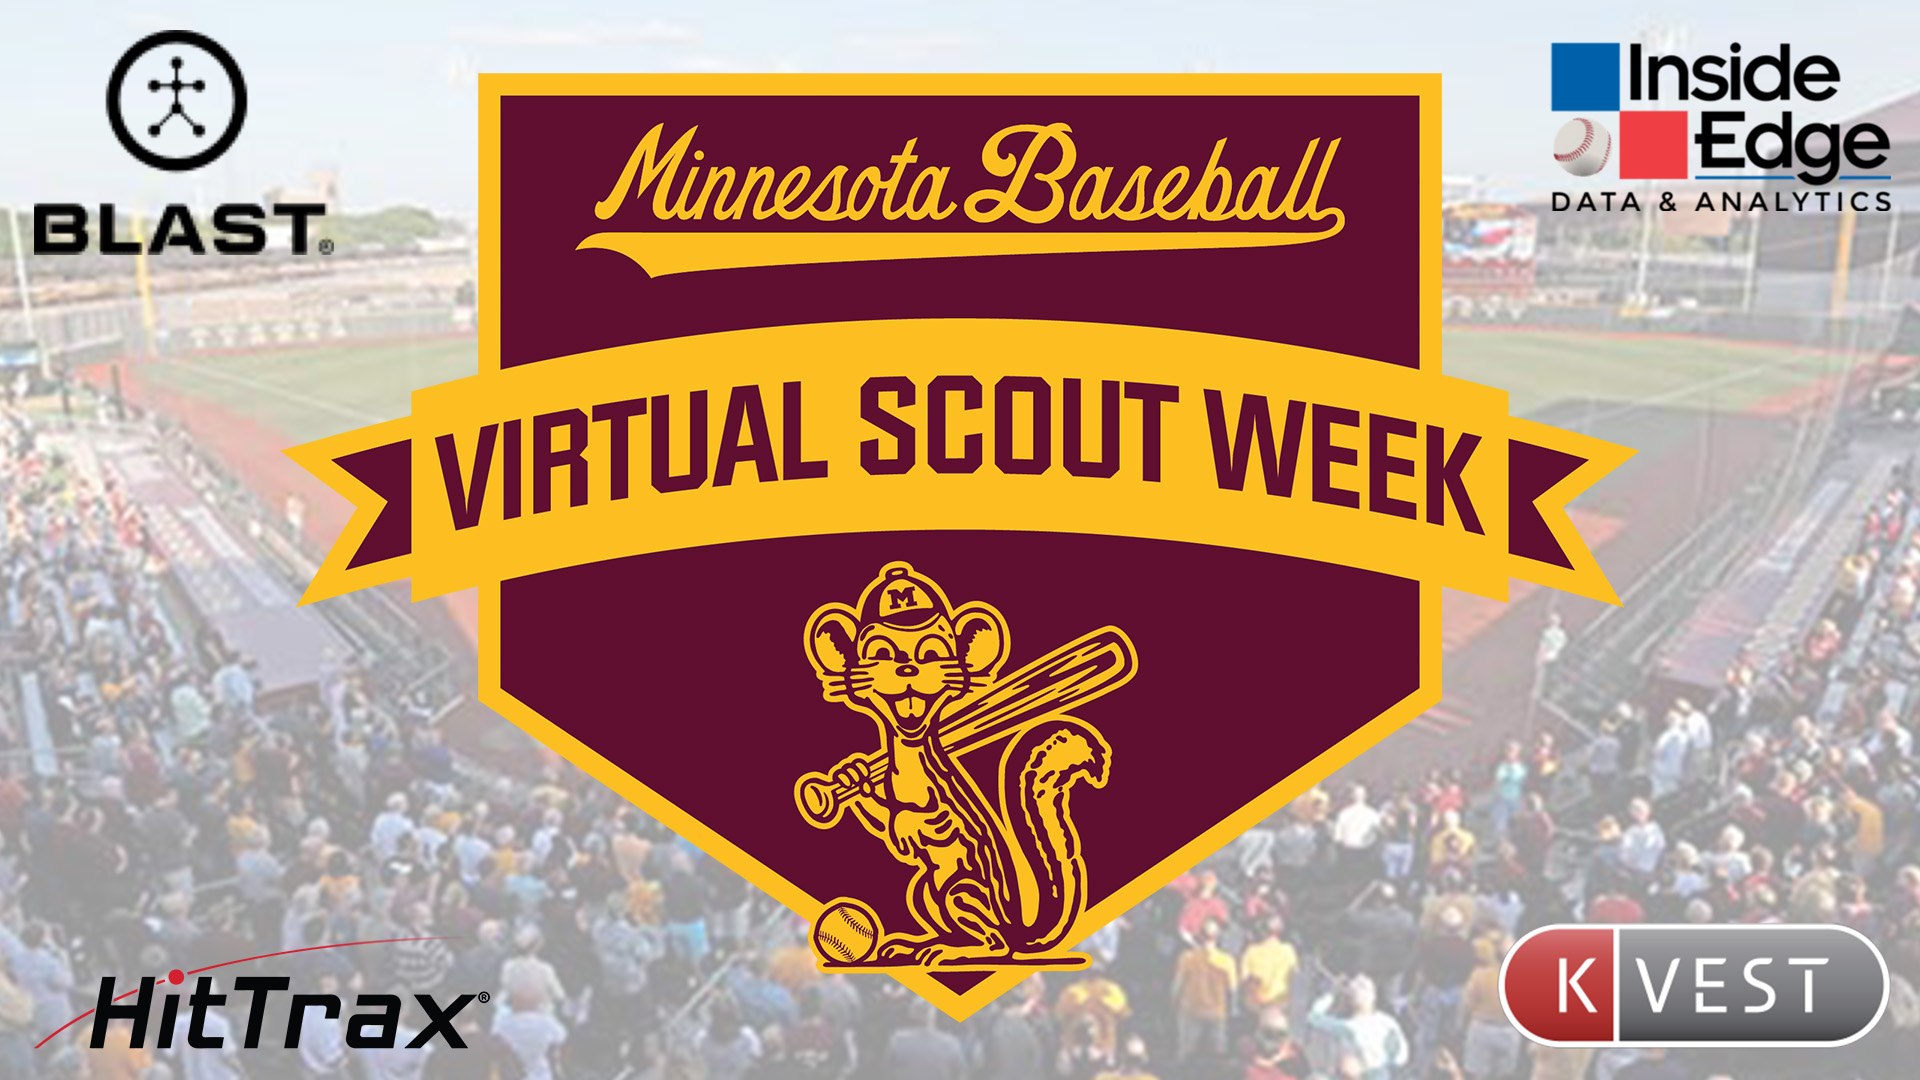 Gopher Baseball To Host Virtual Scout Week From Oct 19 24 University Of Minnesota Athletics